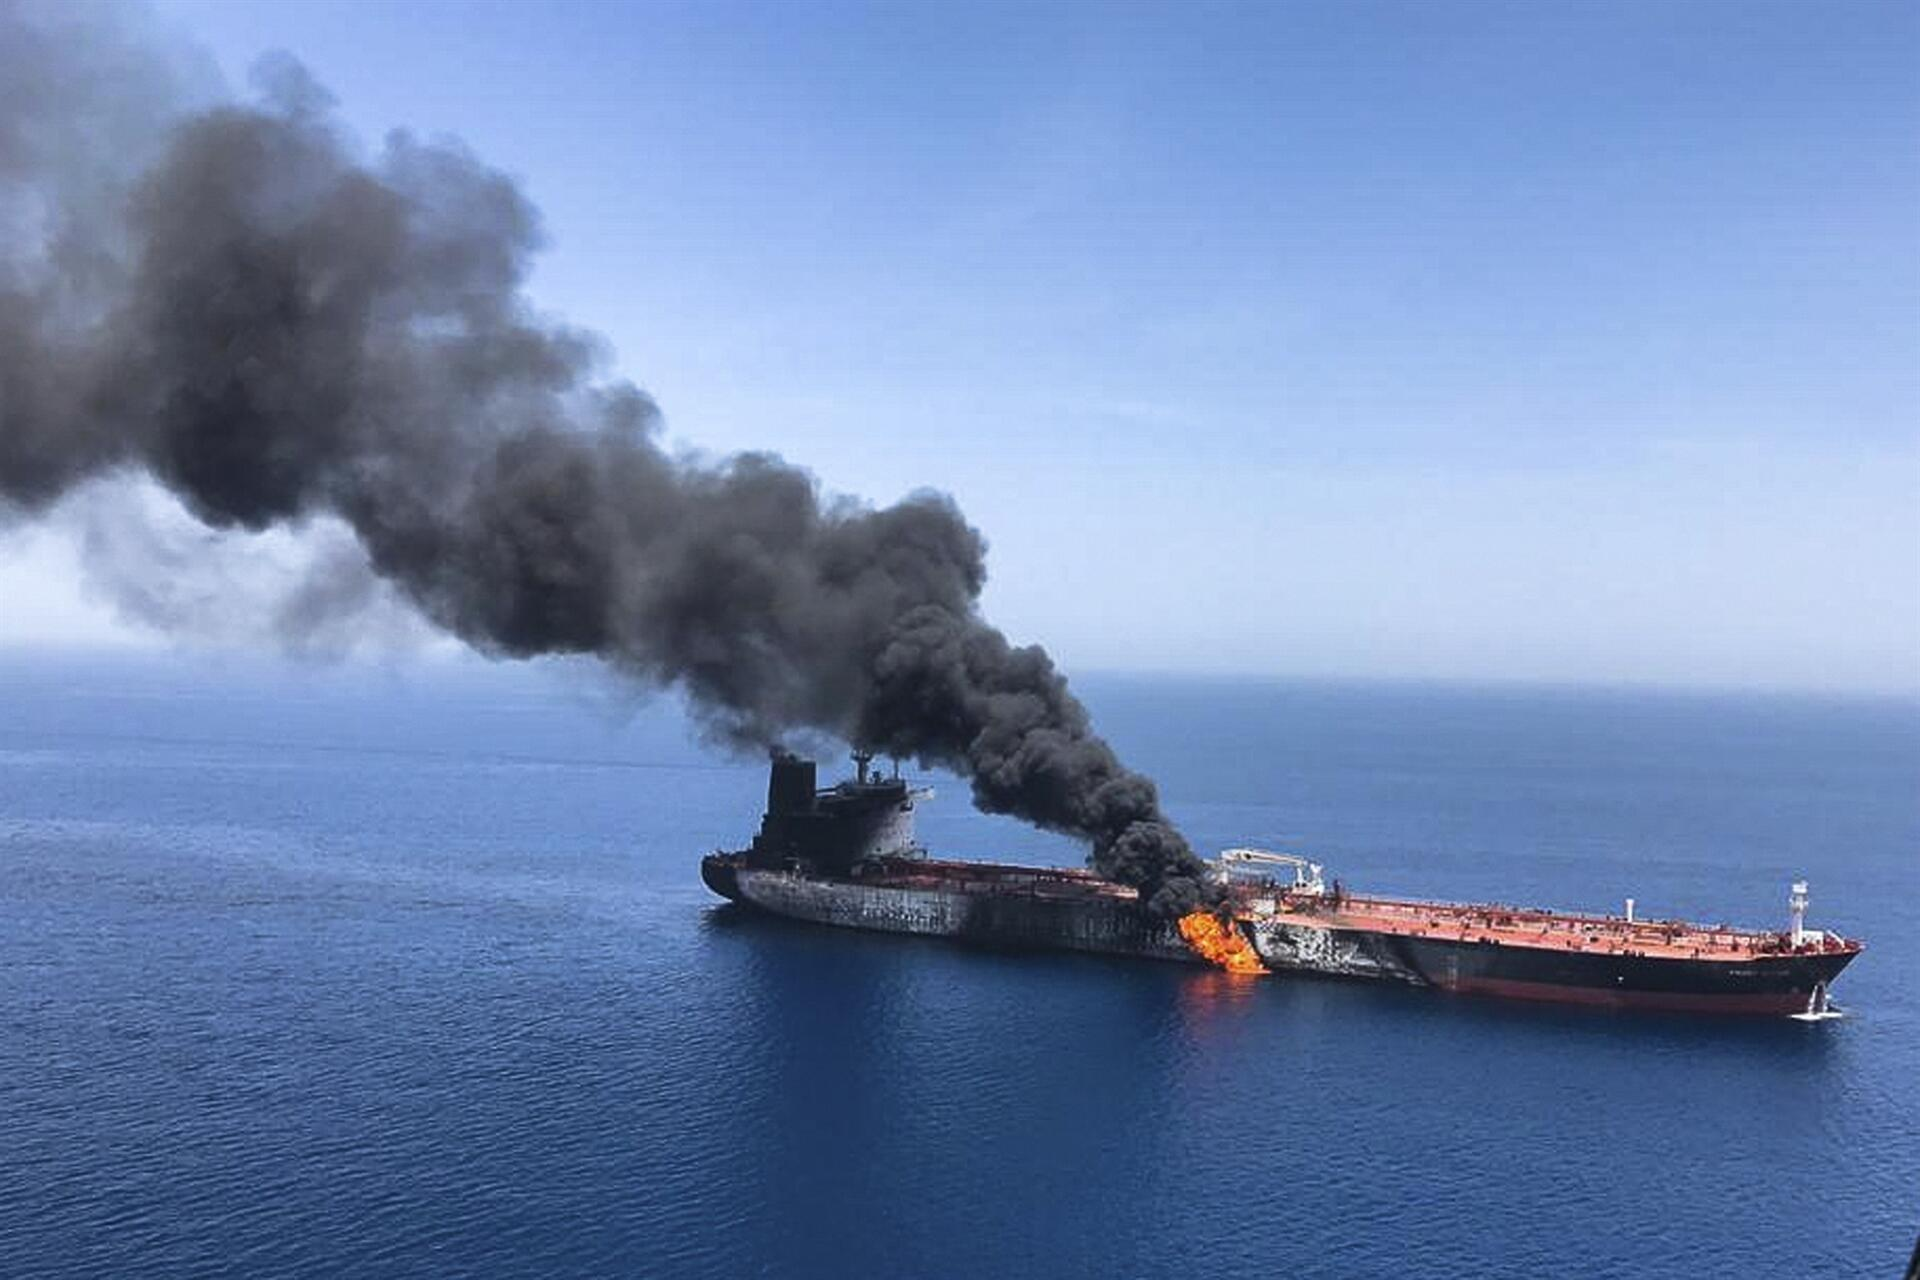 Two tankers catch fire after suspected Gulf of Oman attacks - World News